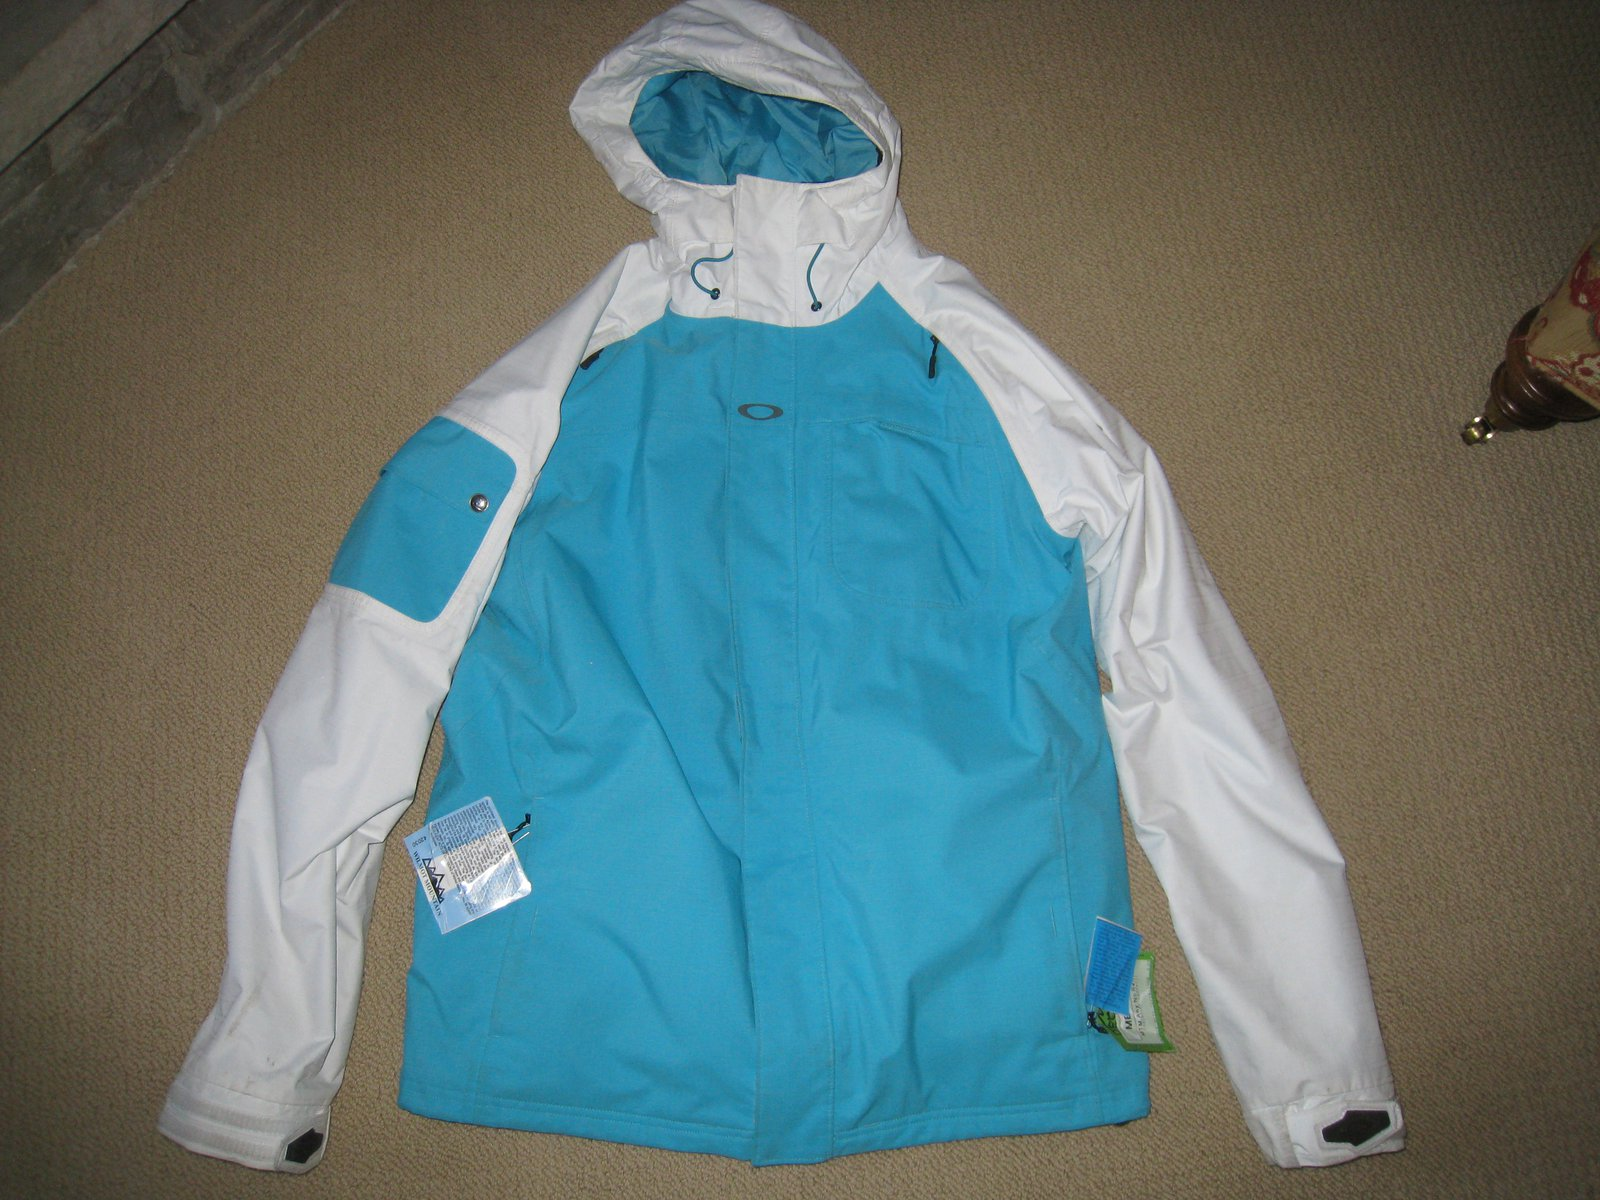 Oakley Jacket for sale